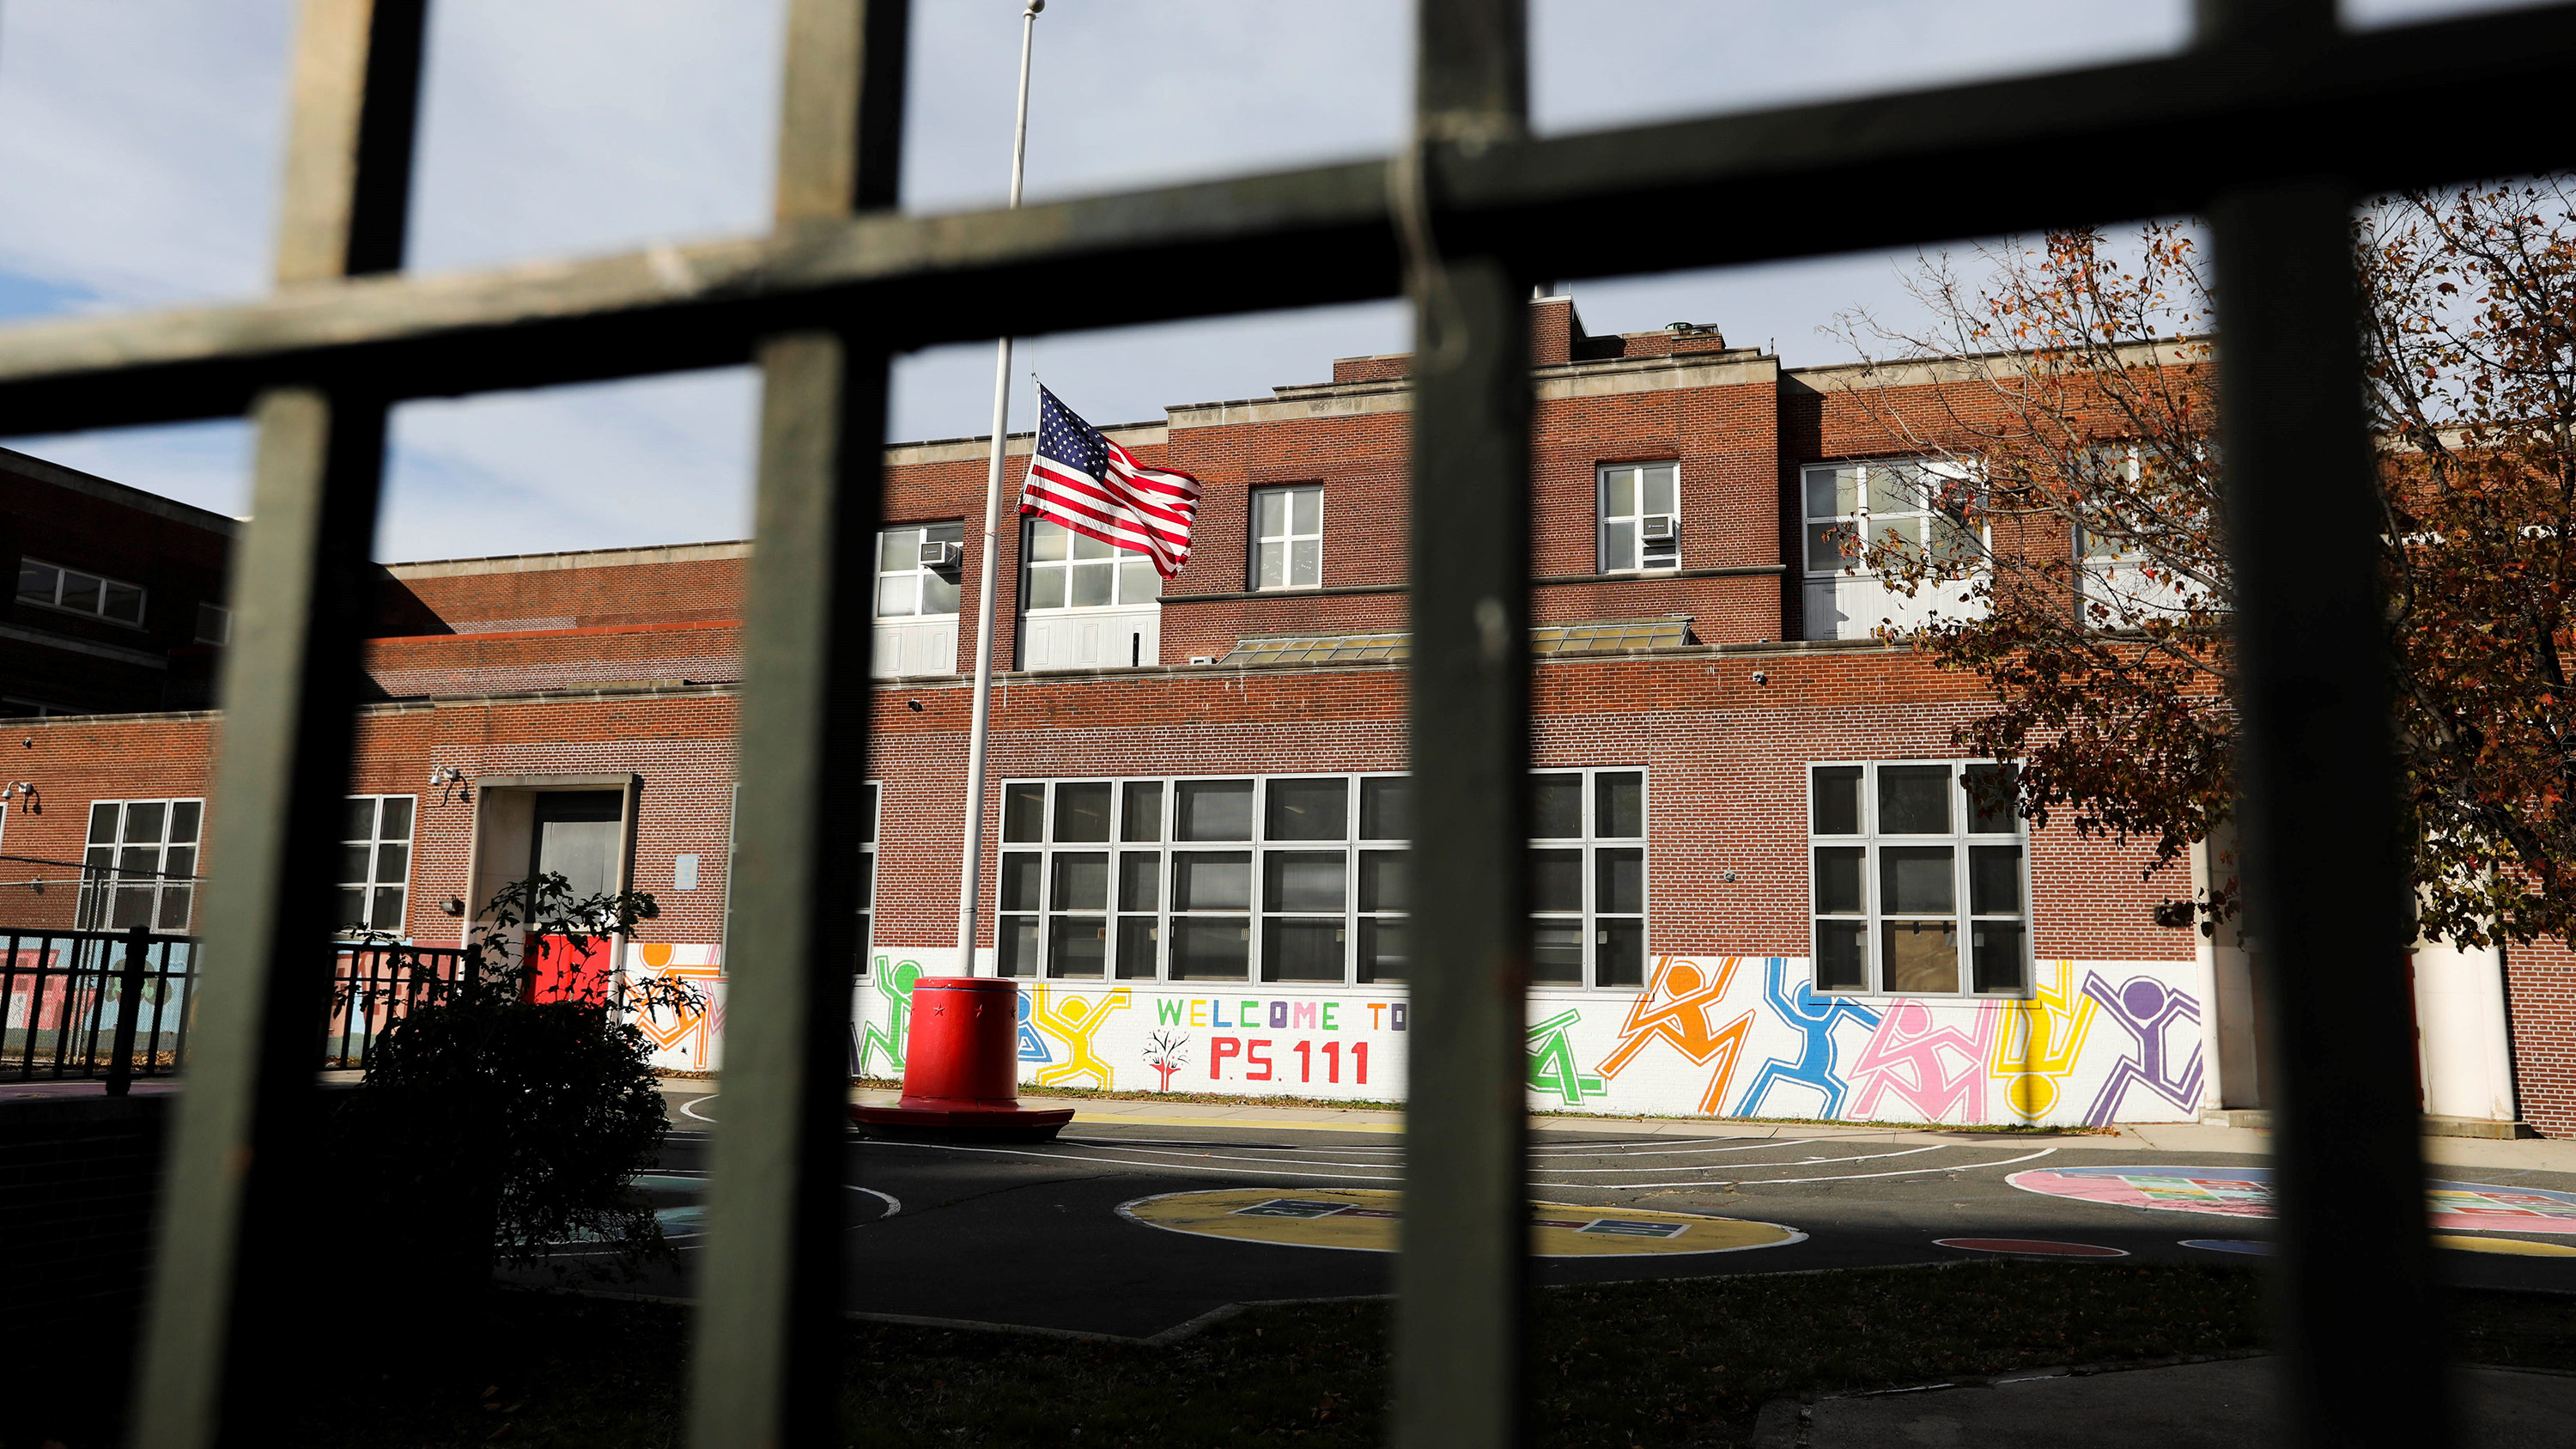 A closed public school is seen in New York, on November 19, 2020.